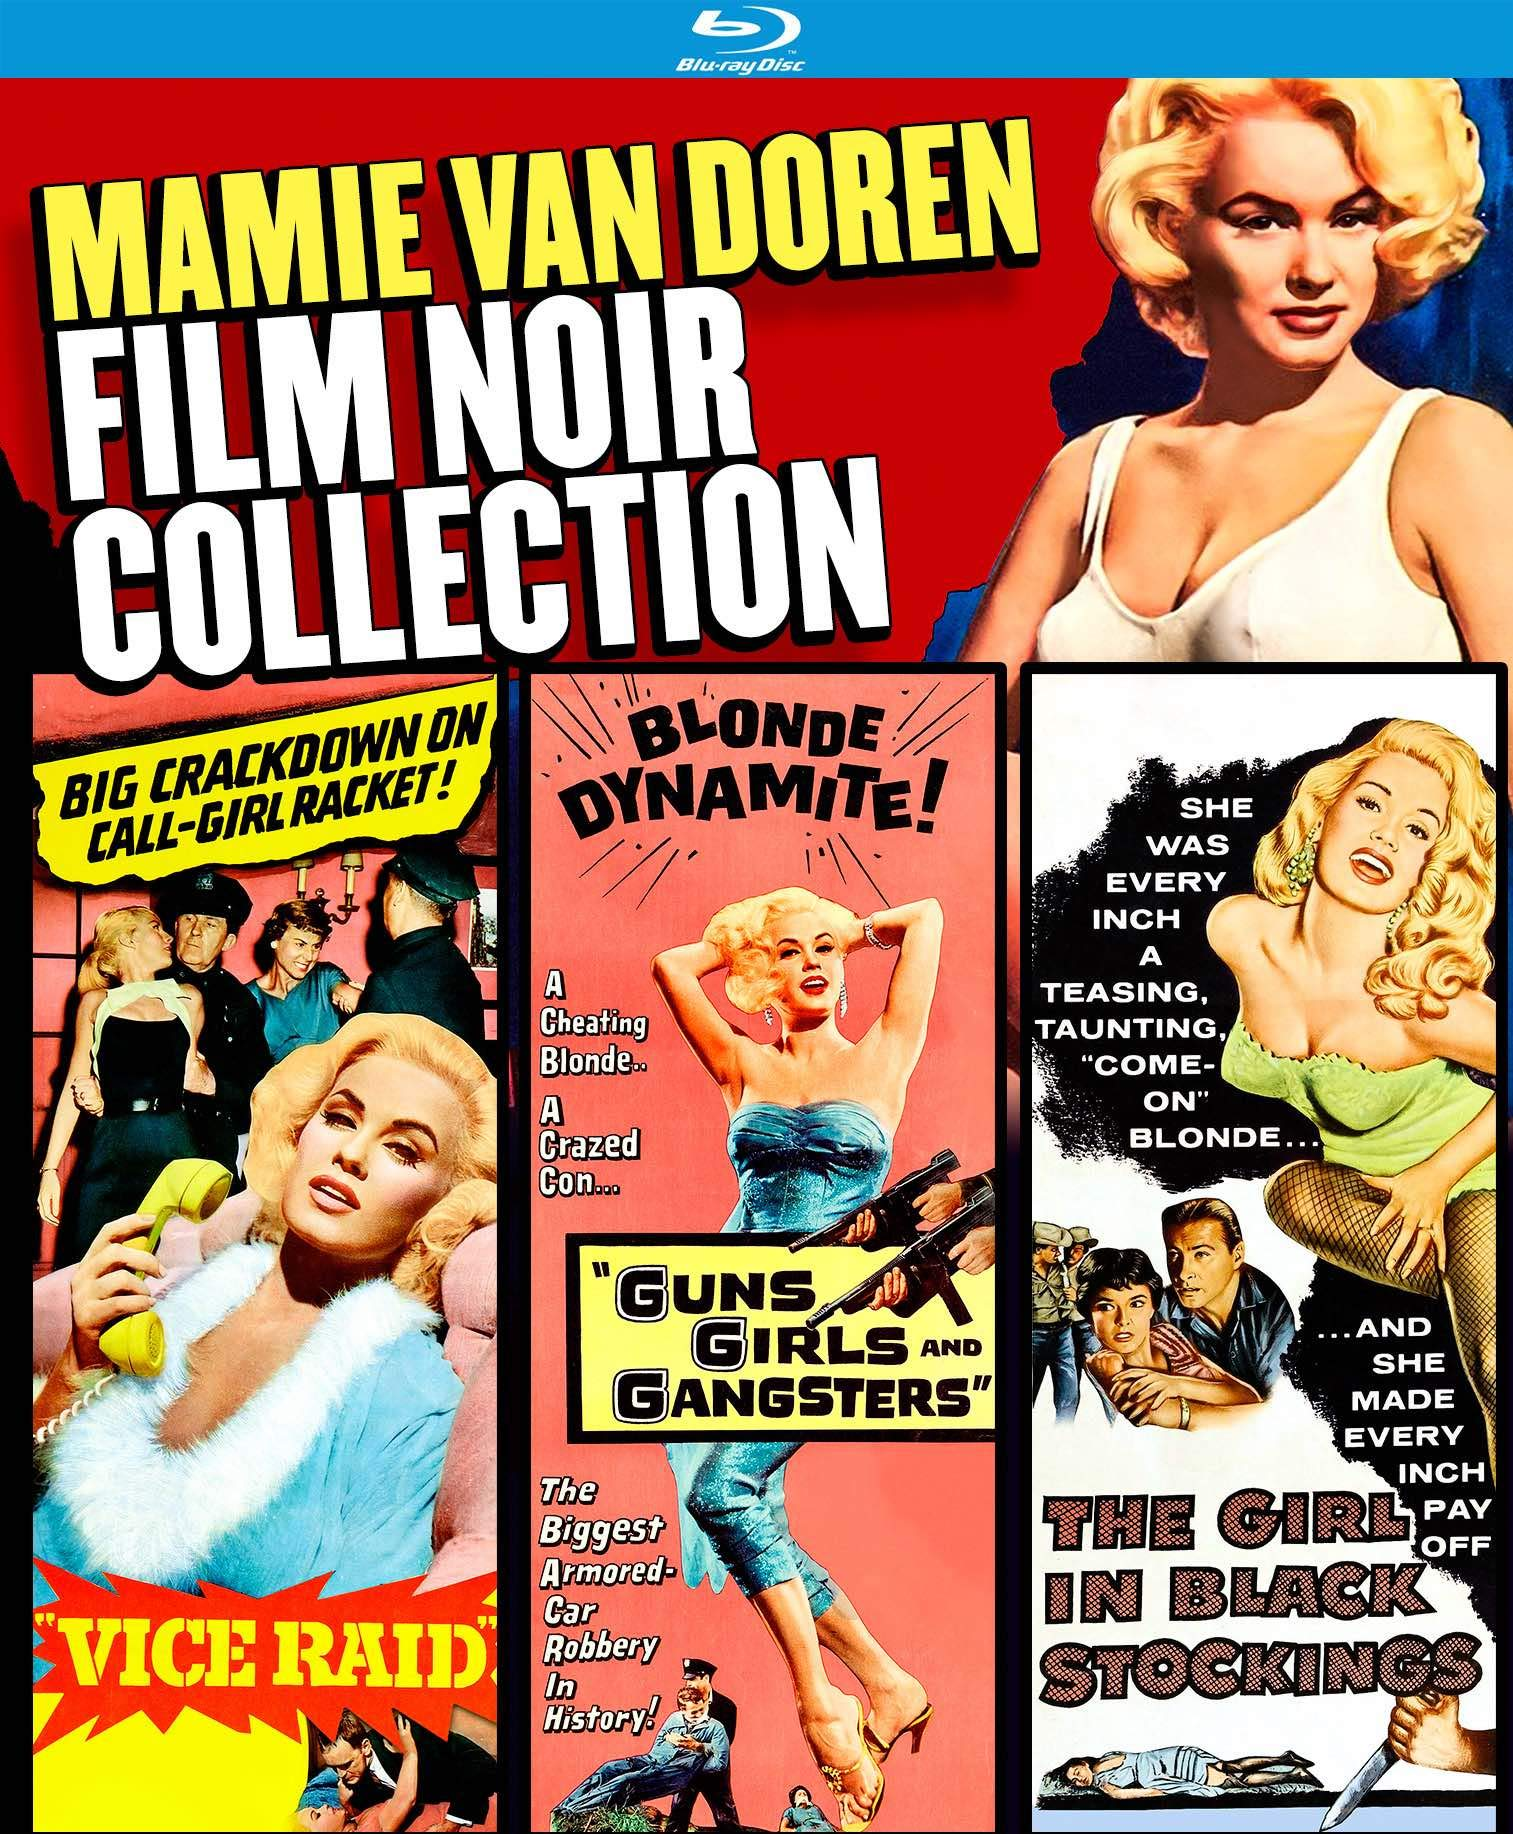 Blu-ray : Mamie Van Doren Film Noir Collection (2 Pack)